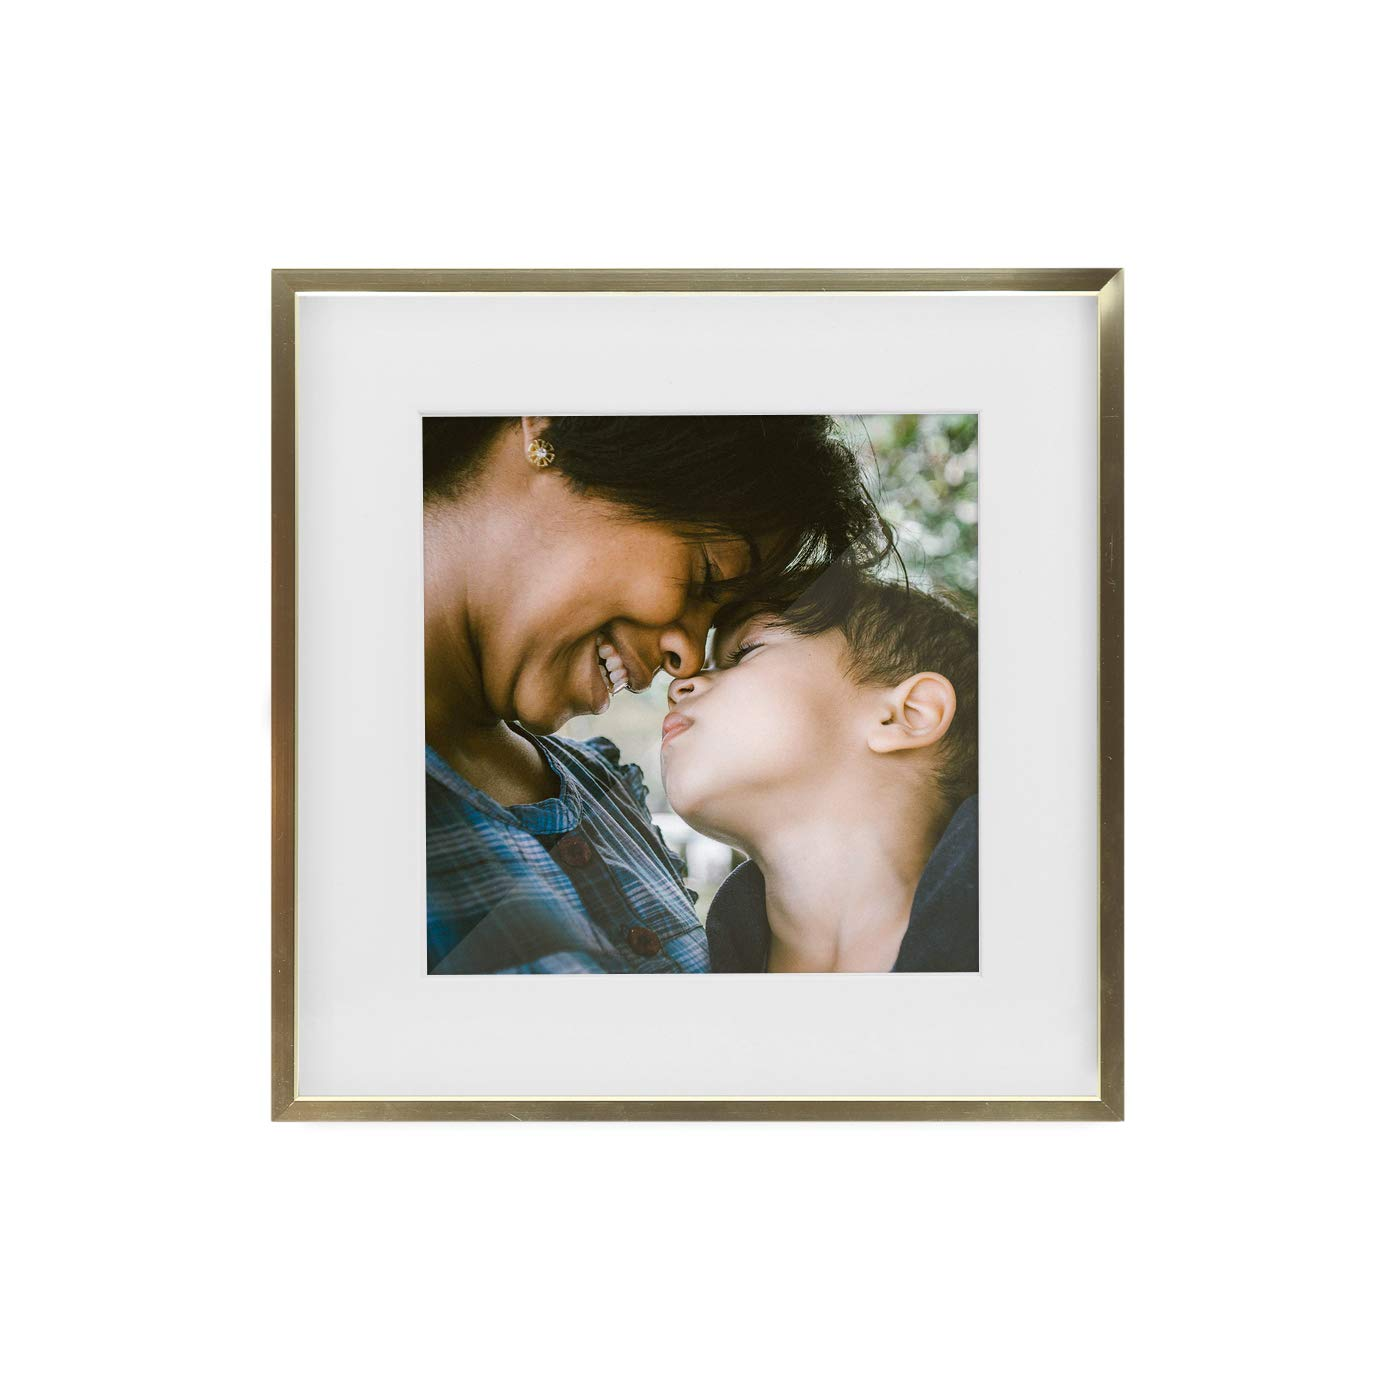 Tiny Mighty Frames - Gold Metal Square Photo Frame, 11x11 (8x8 Matted) (1, Gold) by Tiny Mighty Frames